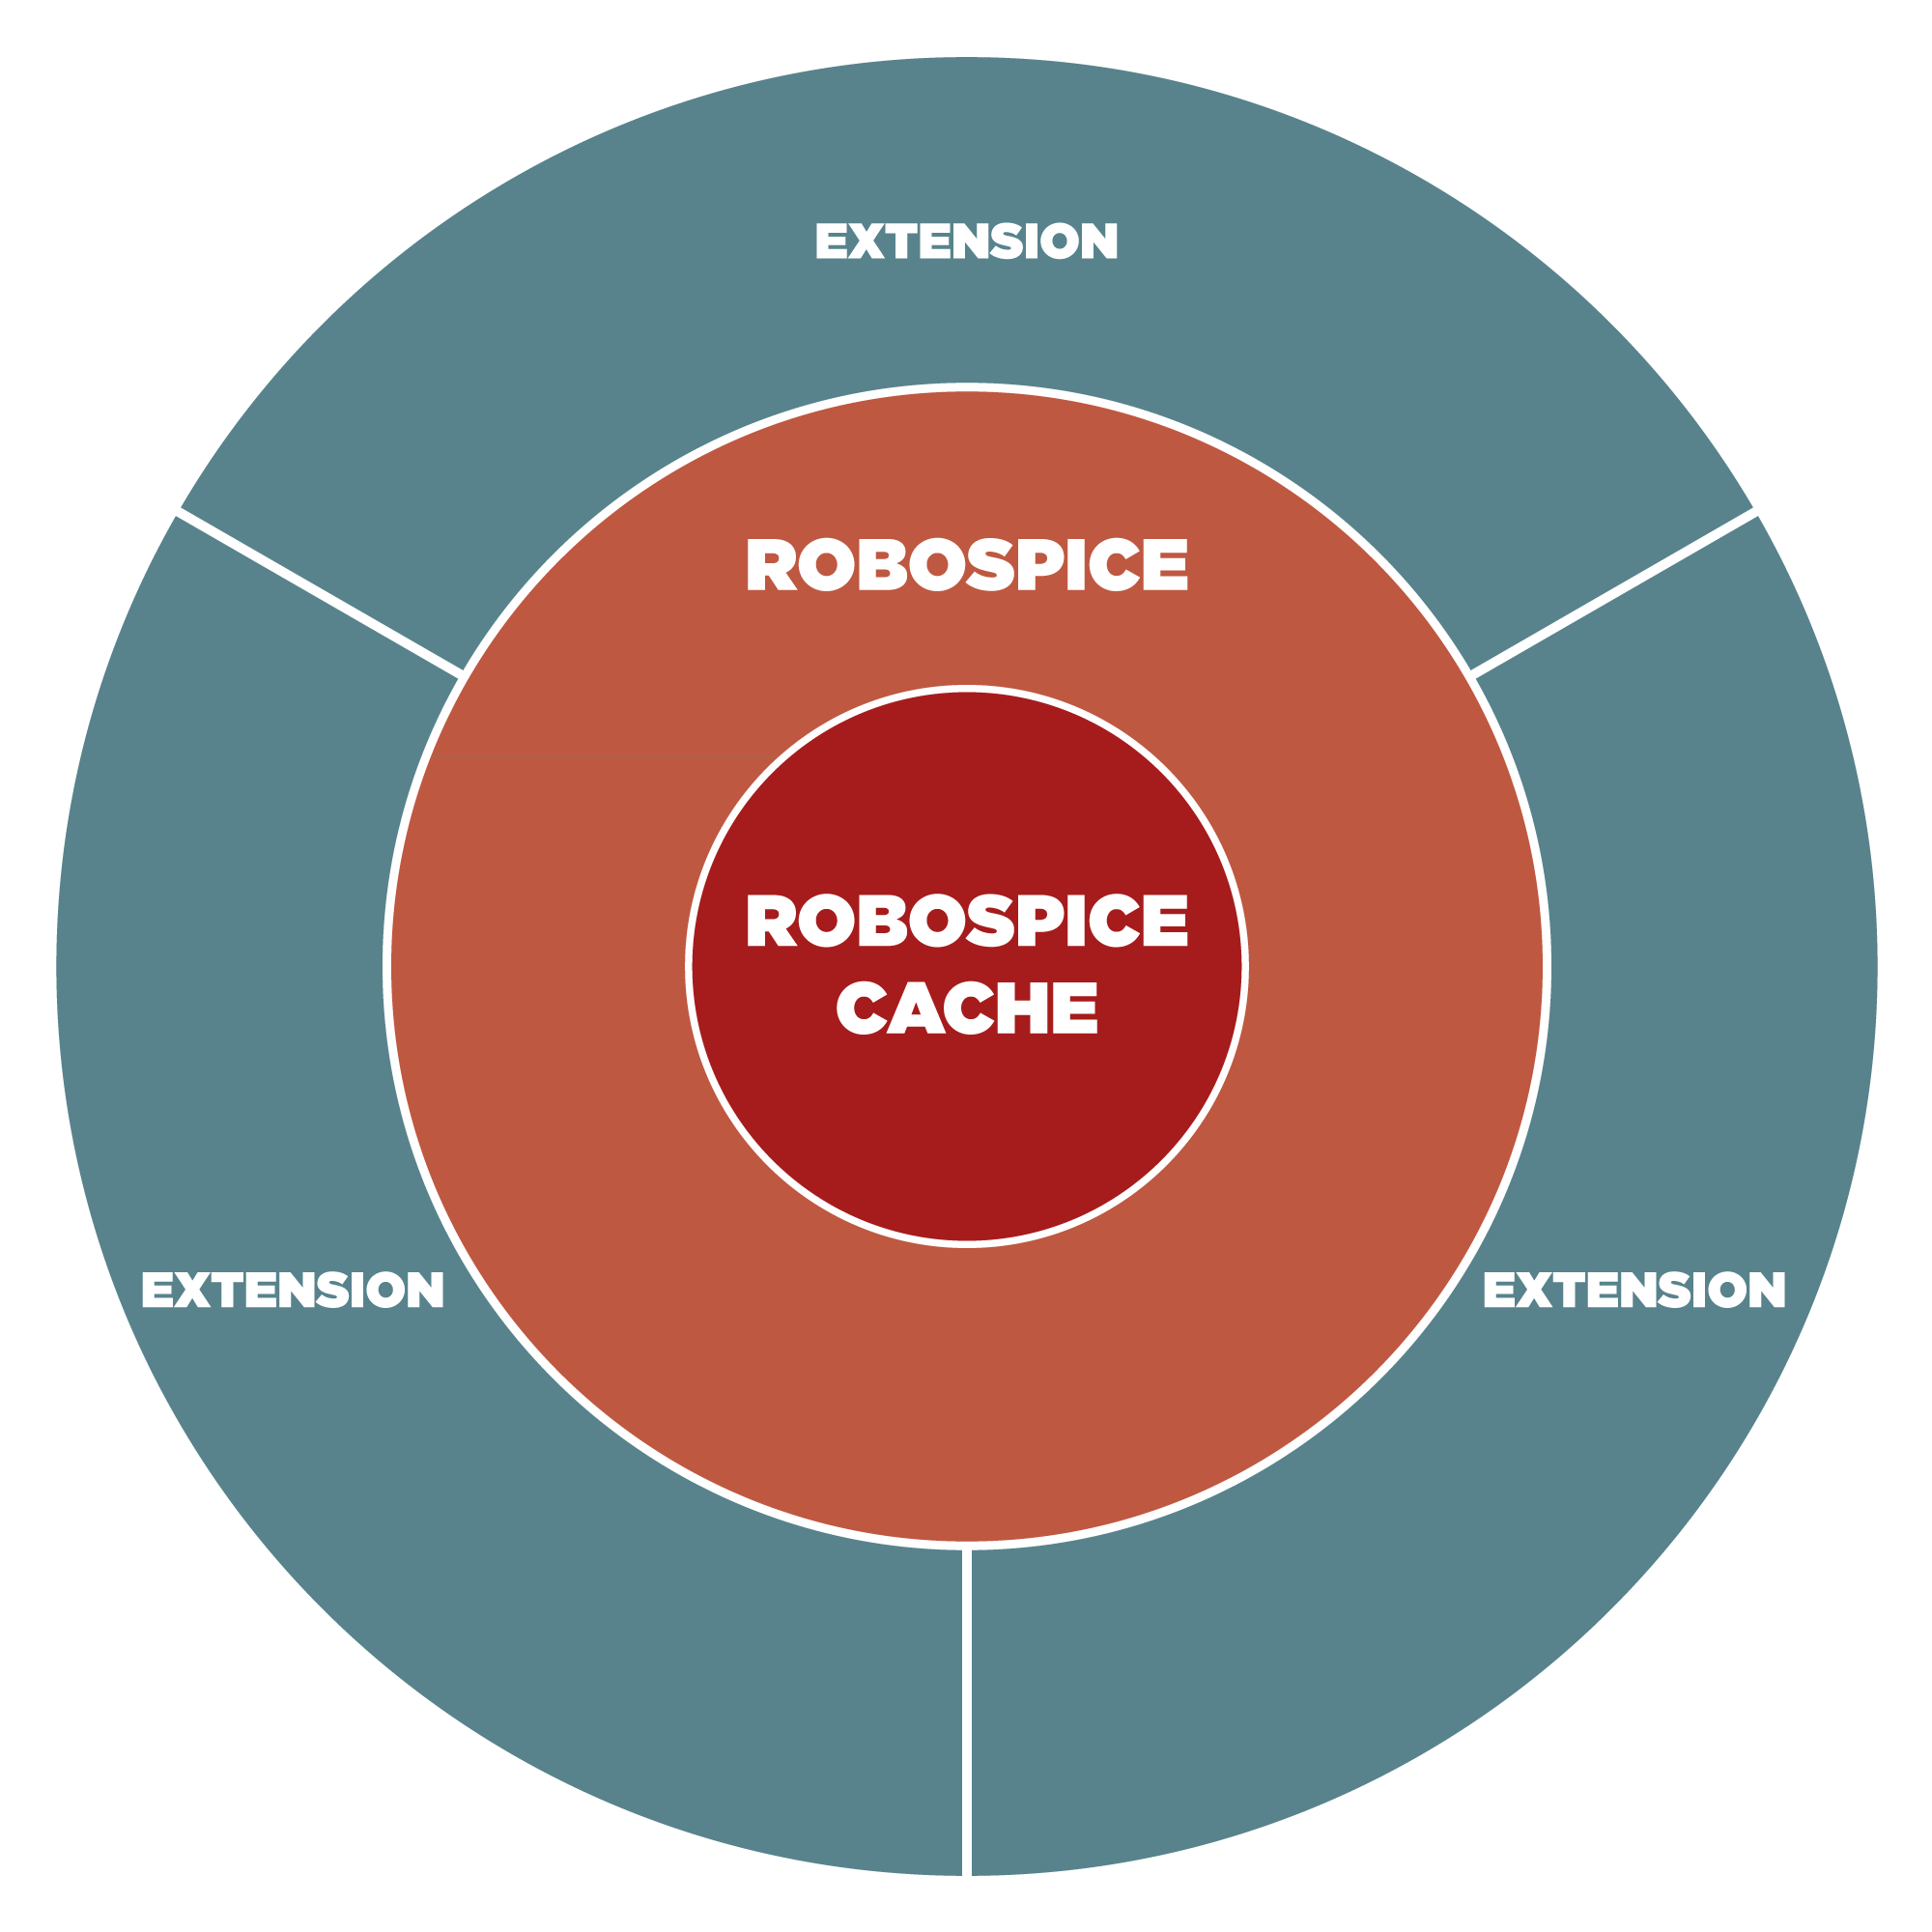 Overview of RoboSpice'sdesign